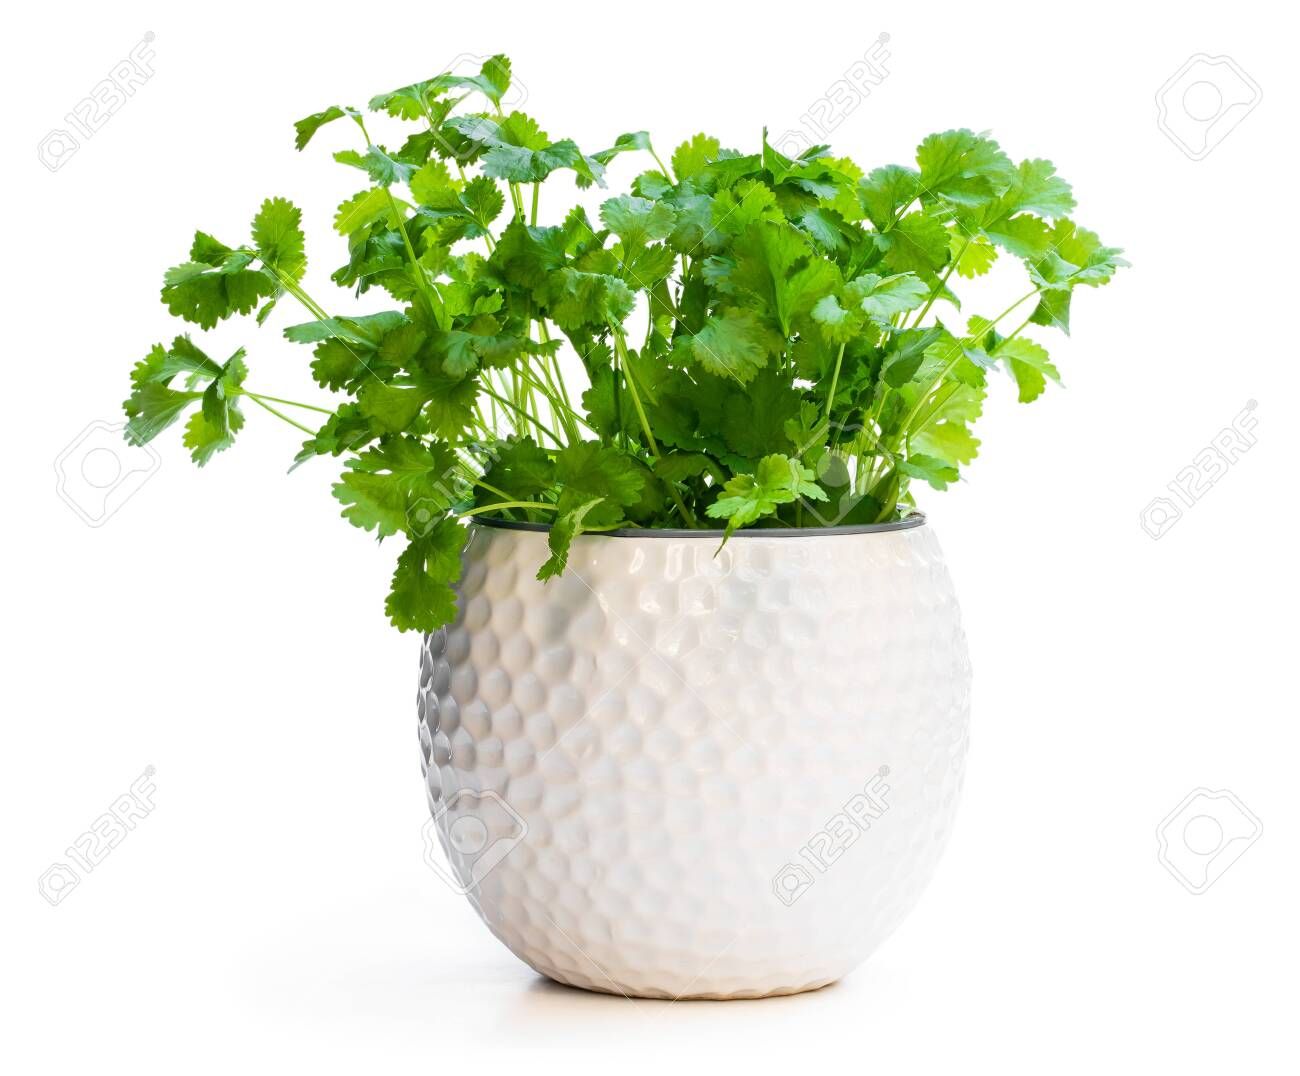 Coriander plant in a pot isolated on white - 120880285